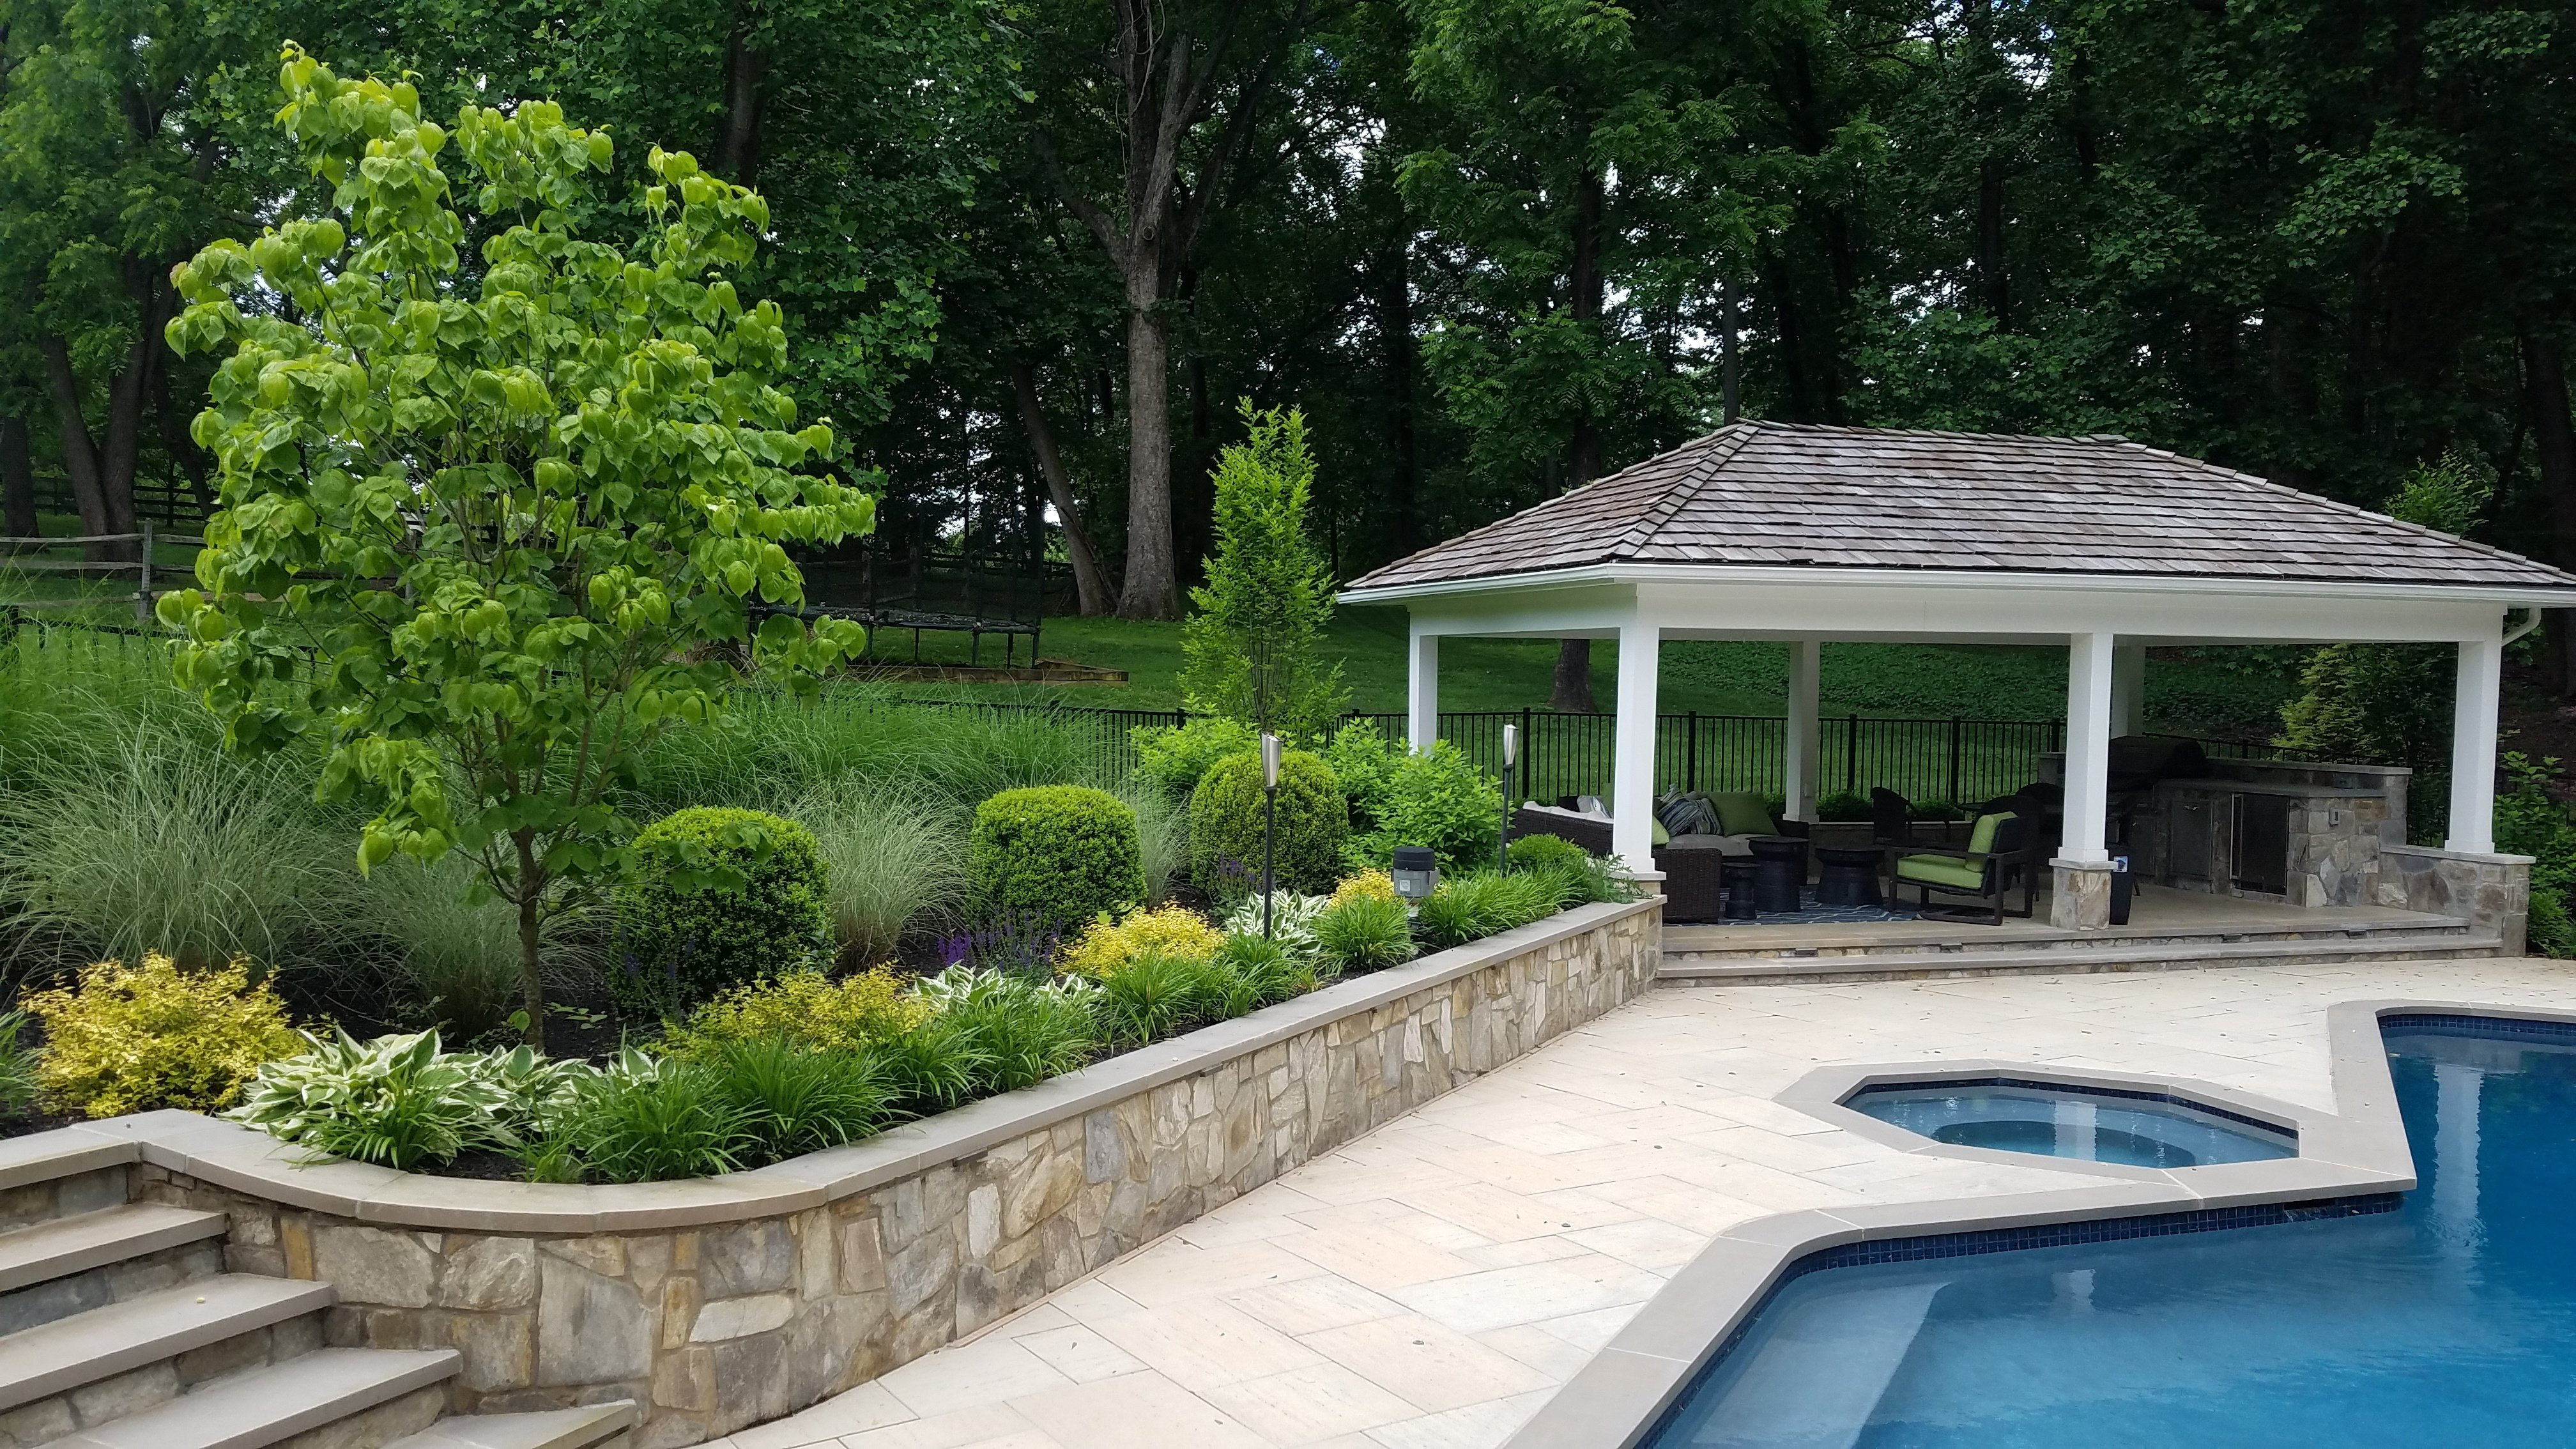 Design & Planting Case Study: Landscaping Great Falls, VA